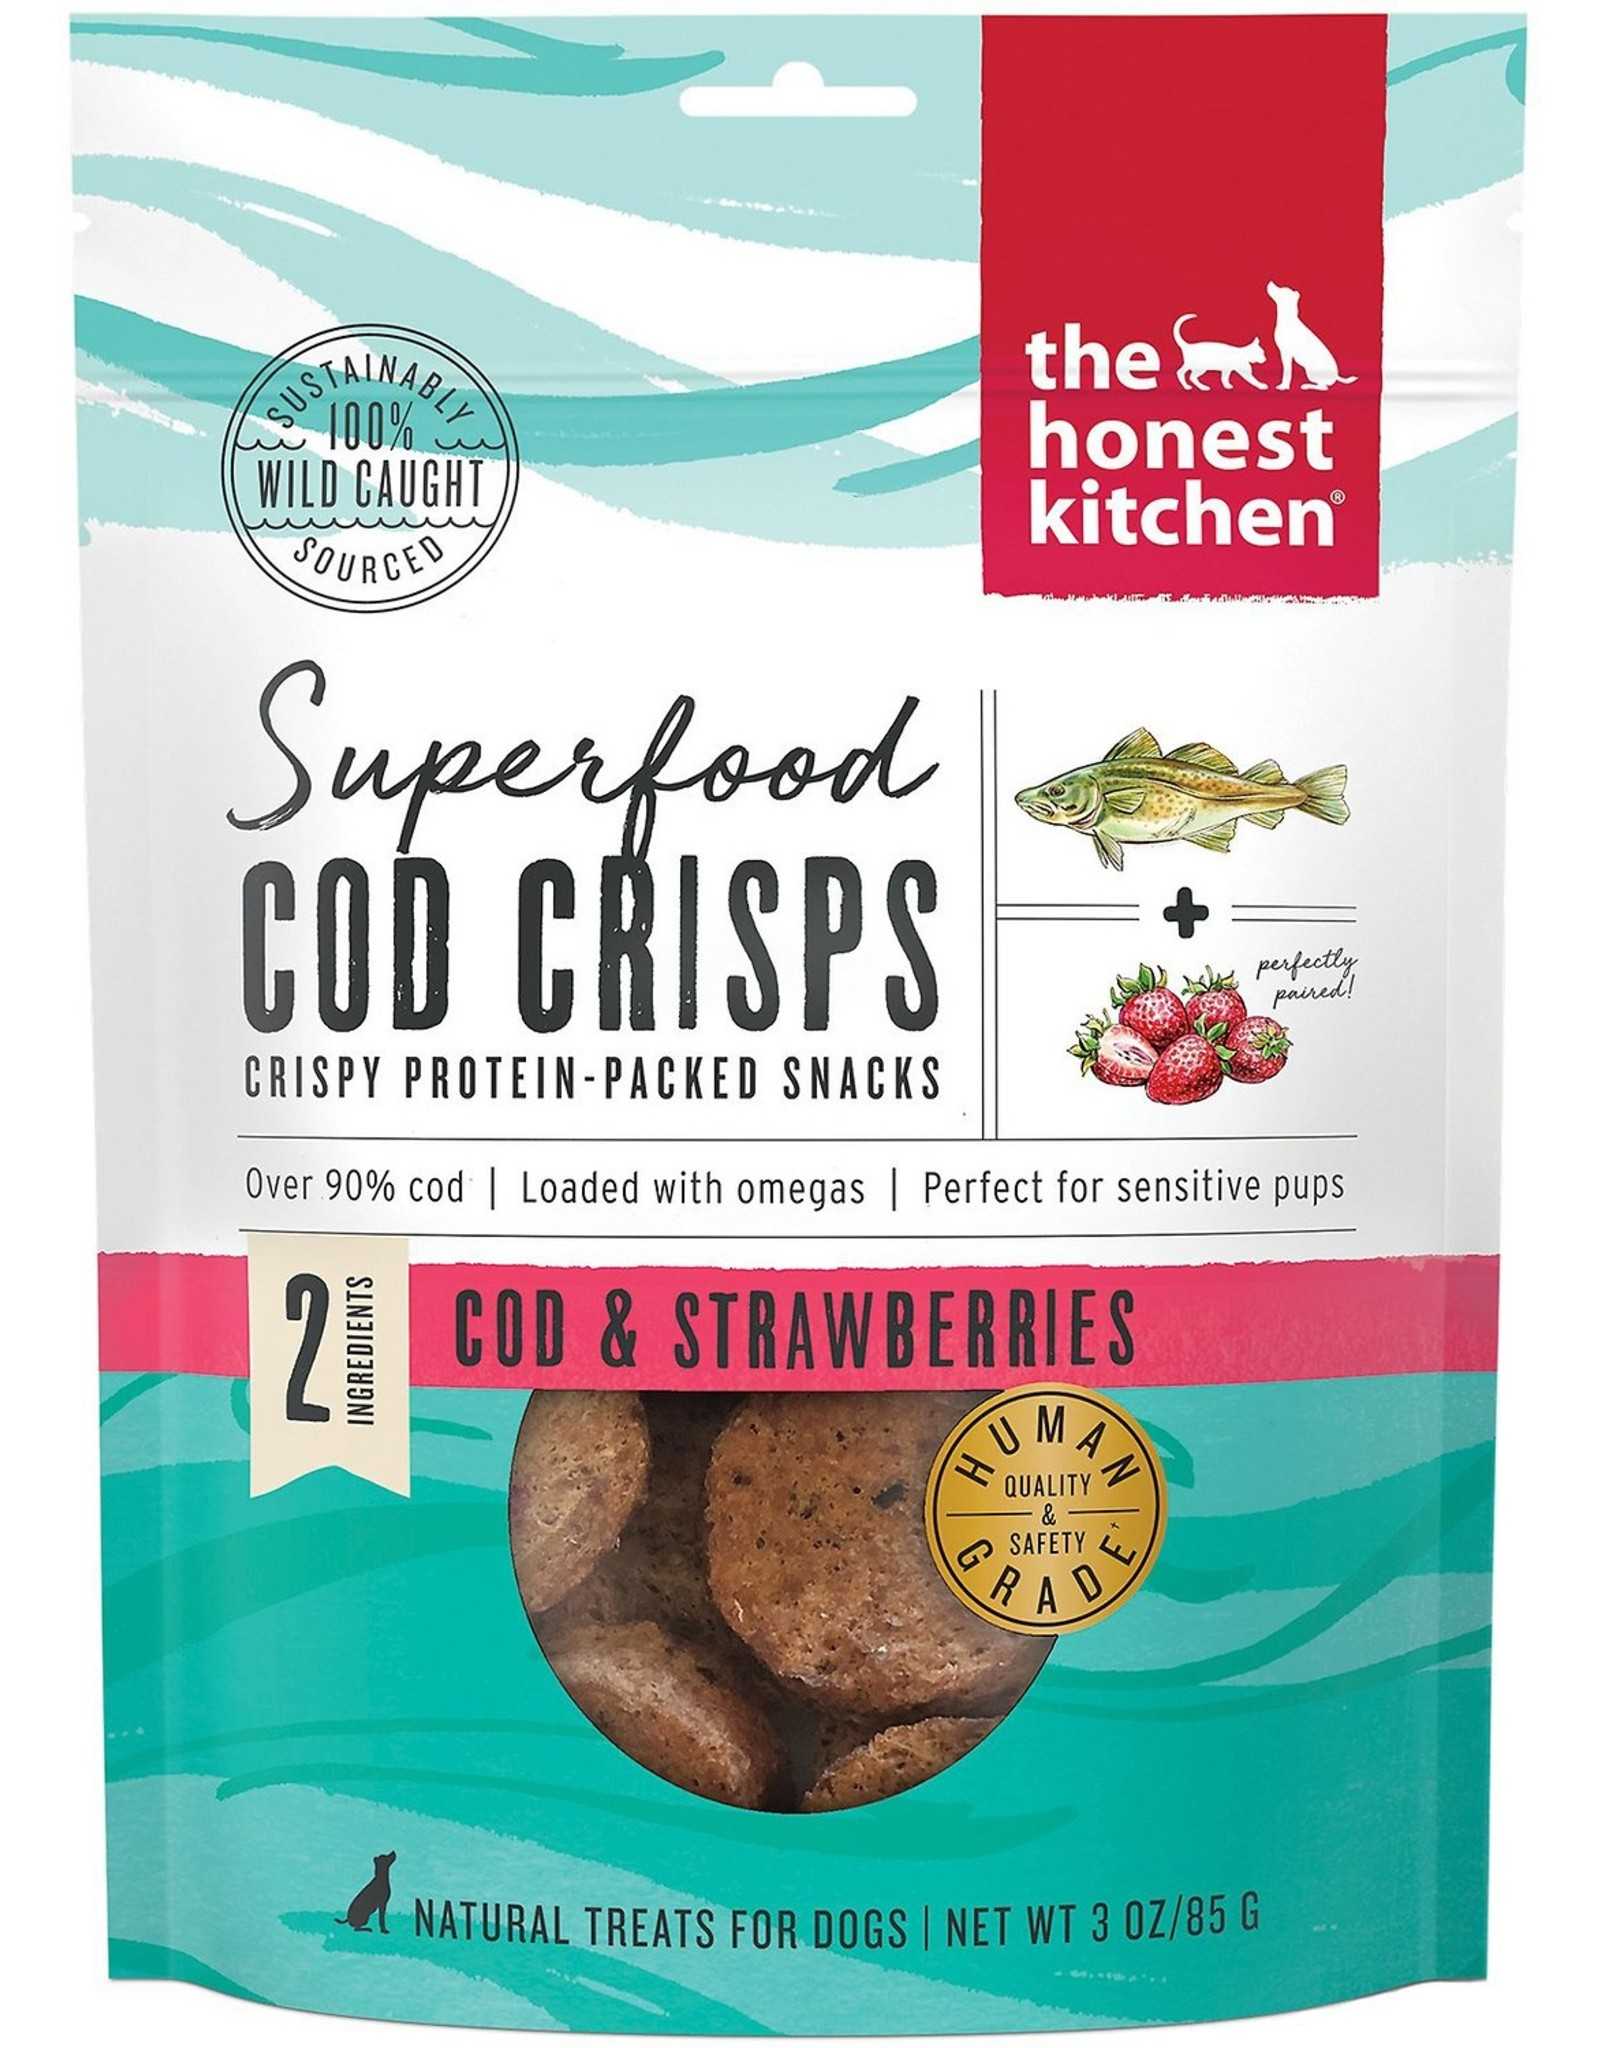 The Honest Kitchen THE HONEST KITCHEN SUPERFOOD COD CRISPS COD & STRAWBERRIES 3OZ